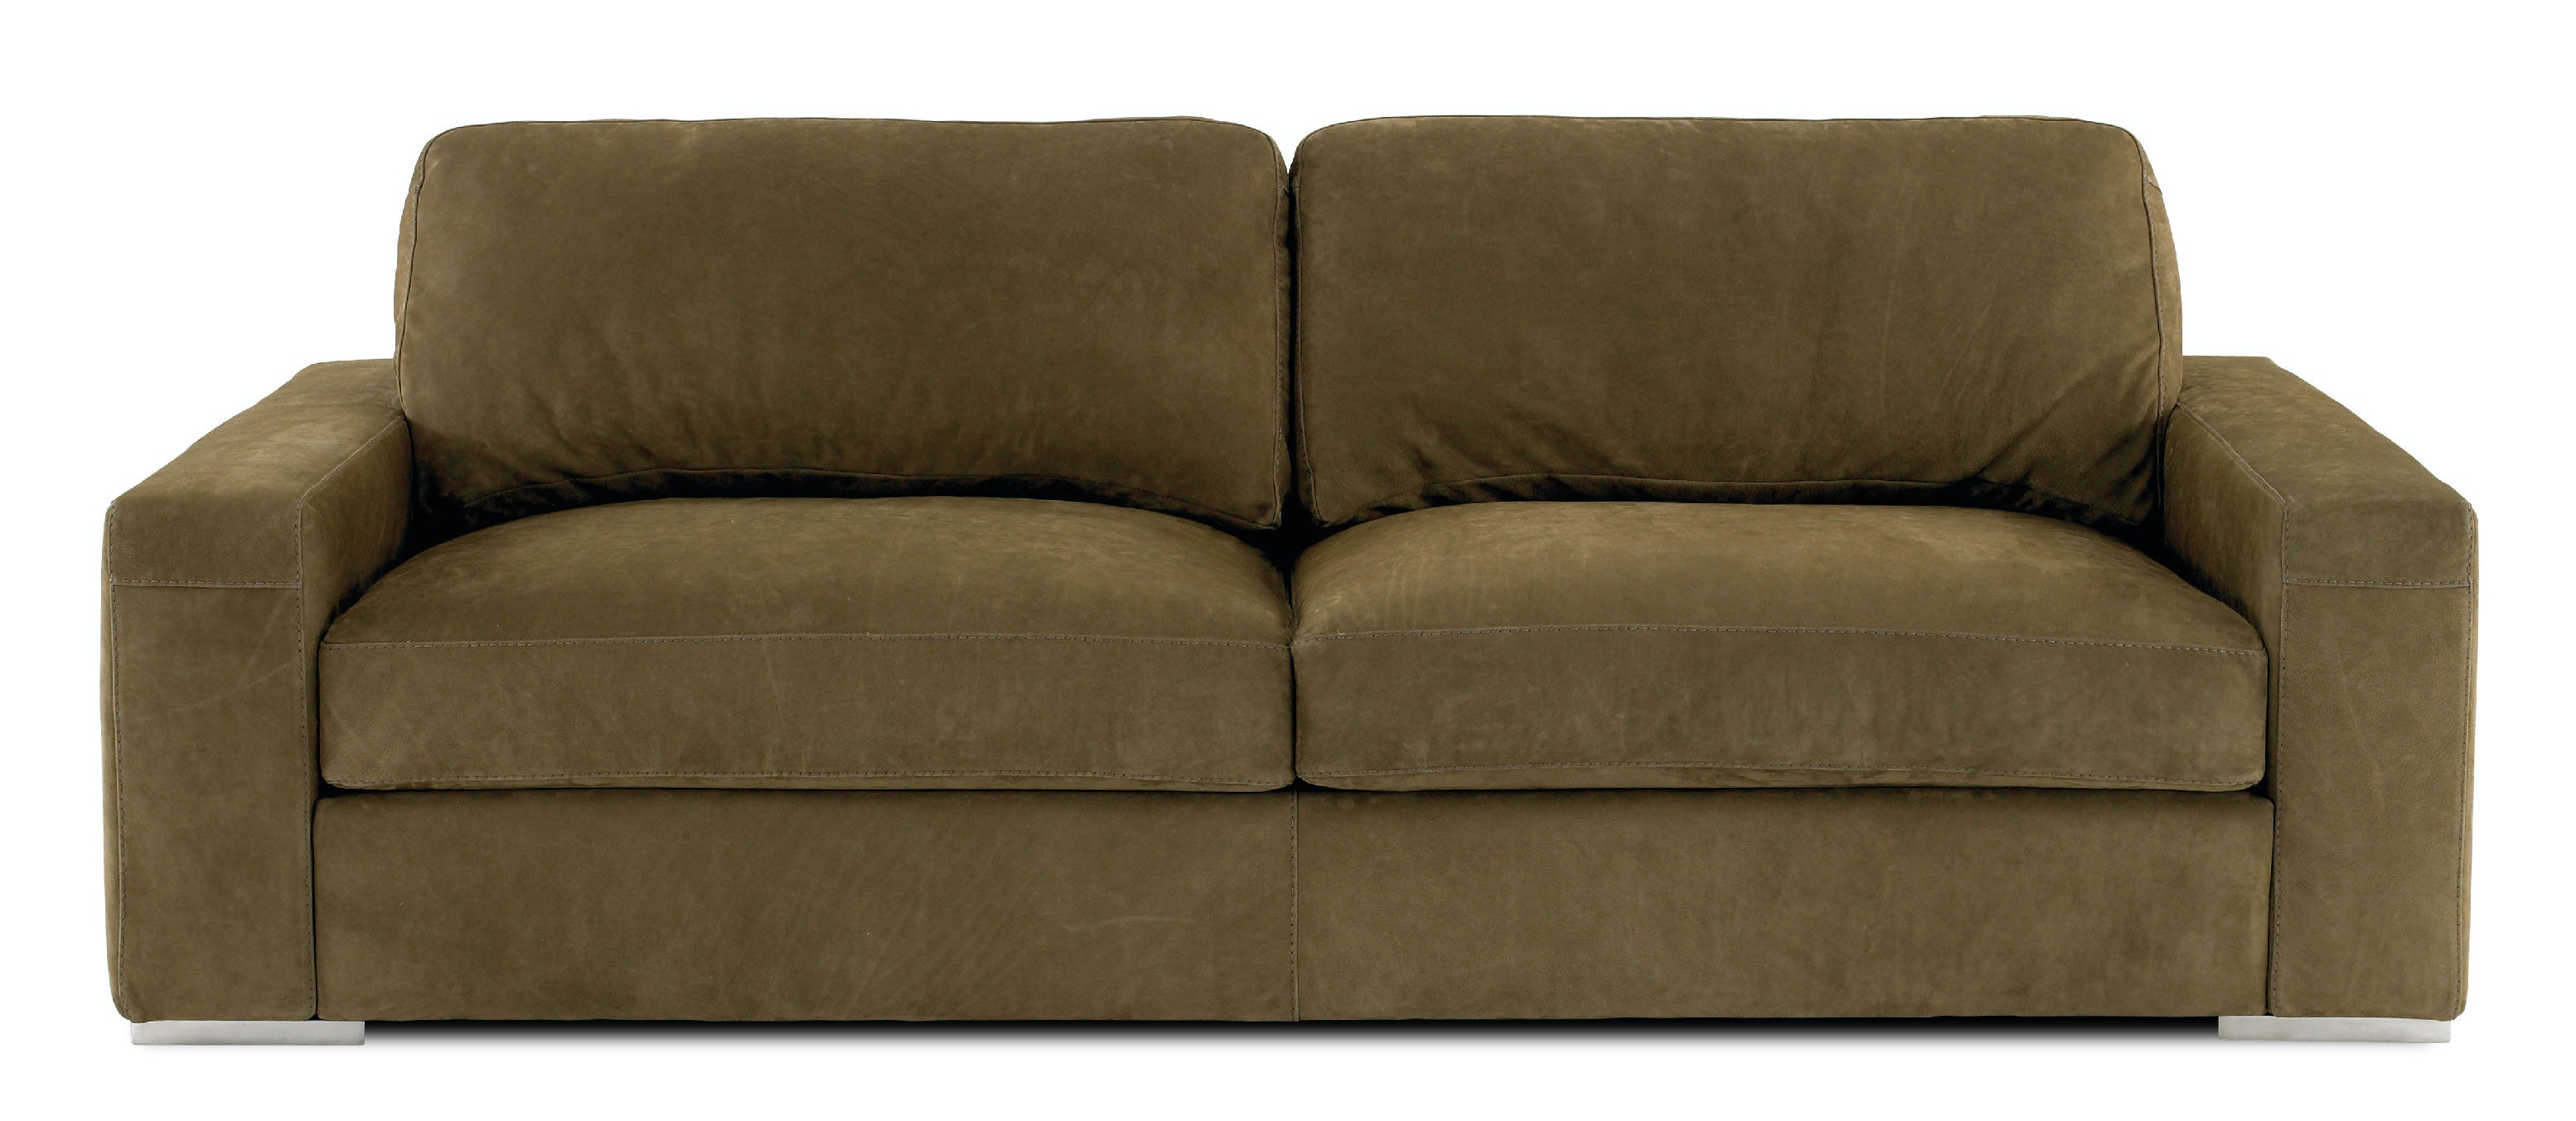 Lovely American Leather Two Cushion Sofa WST SO2 ST